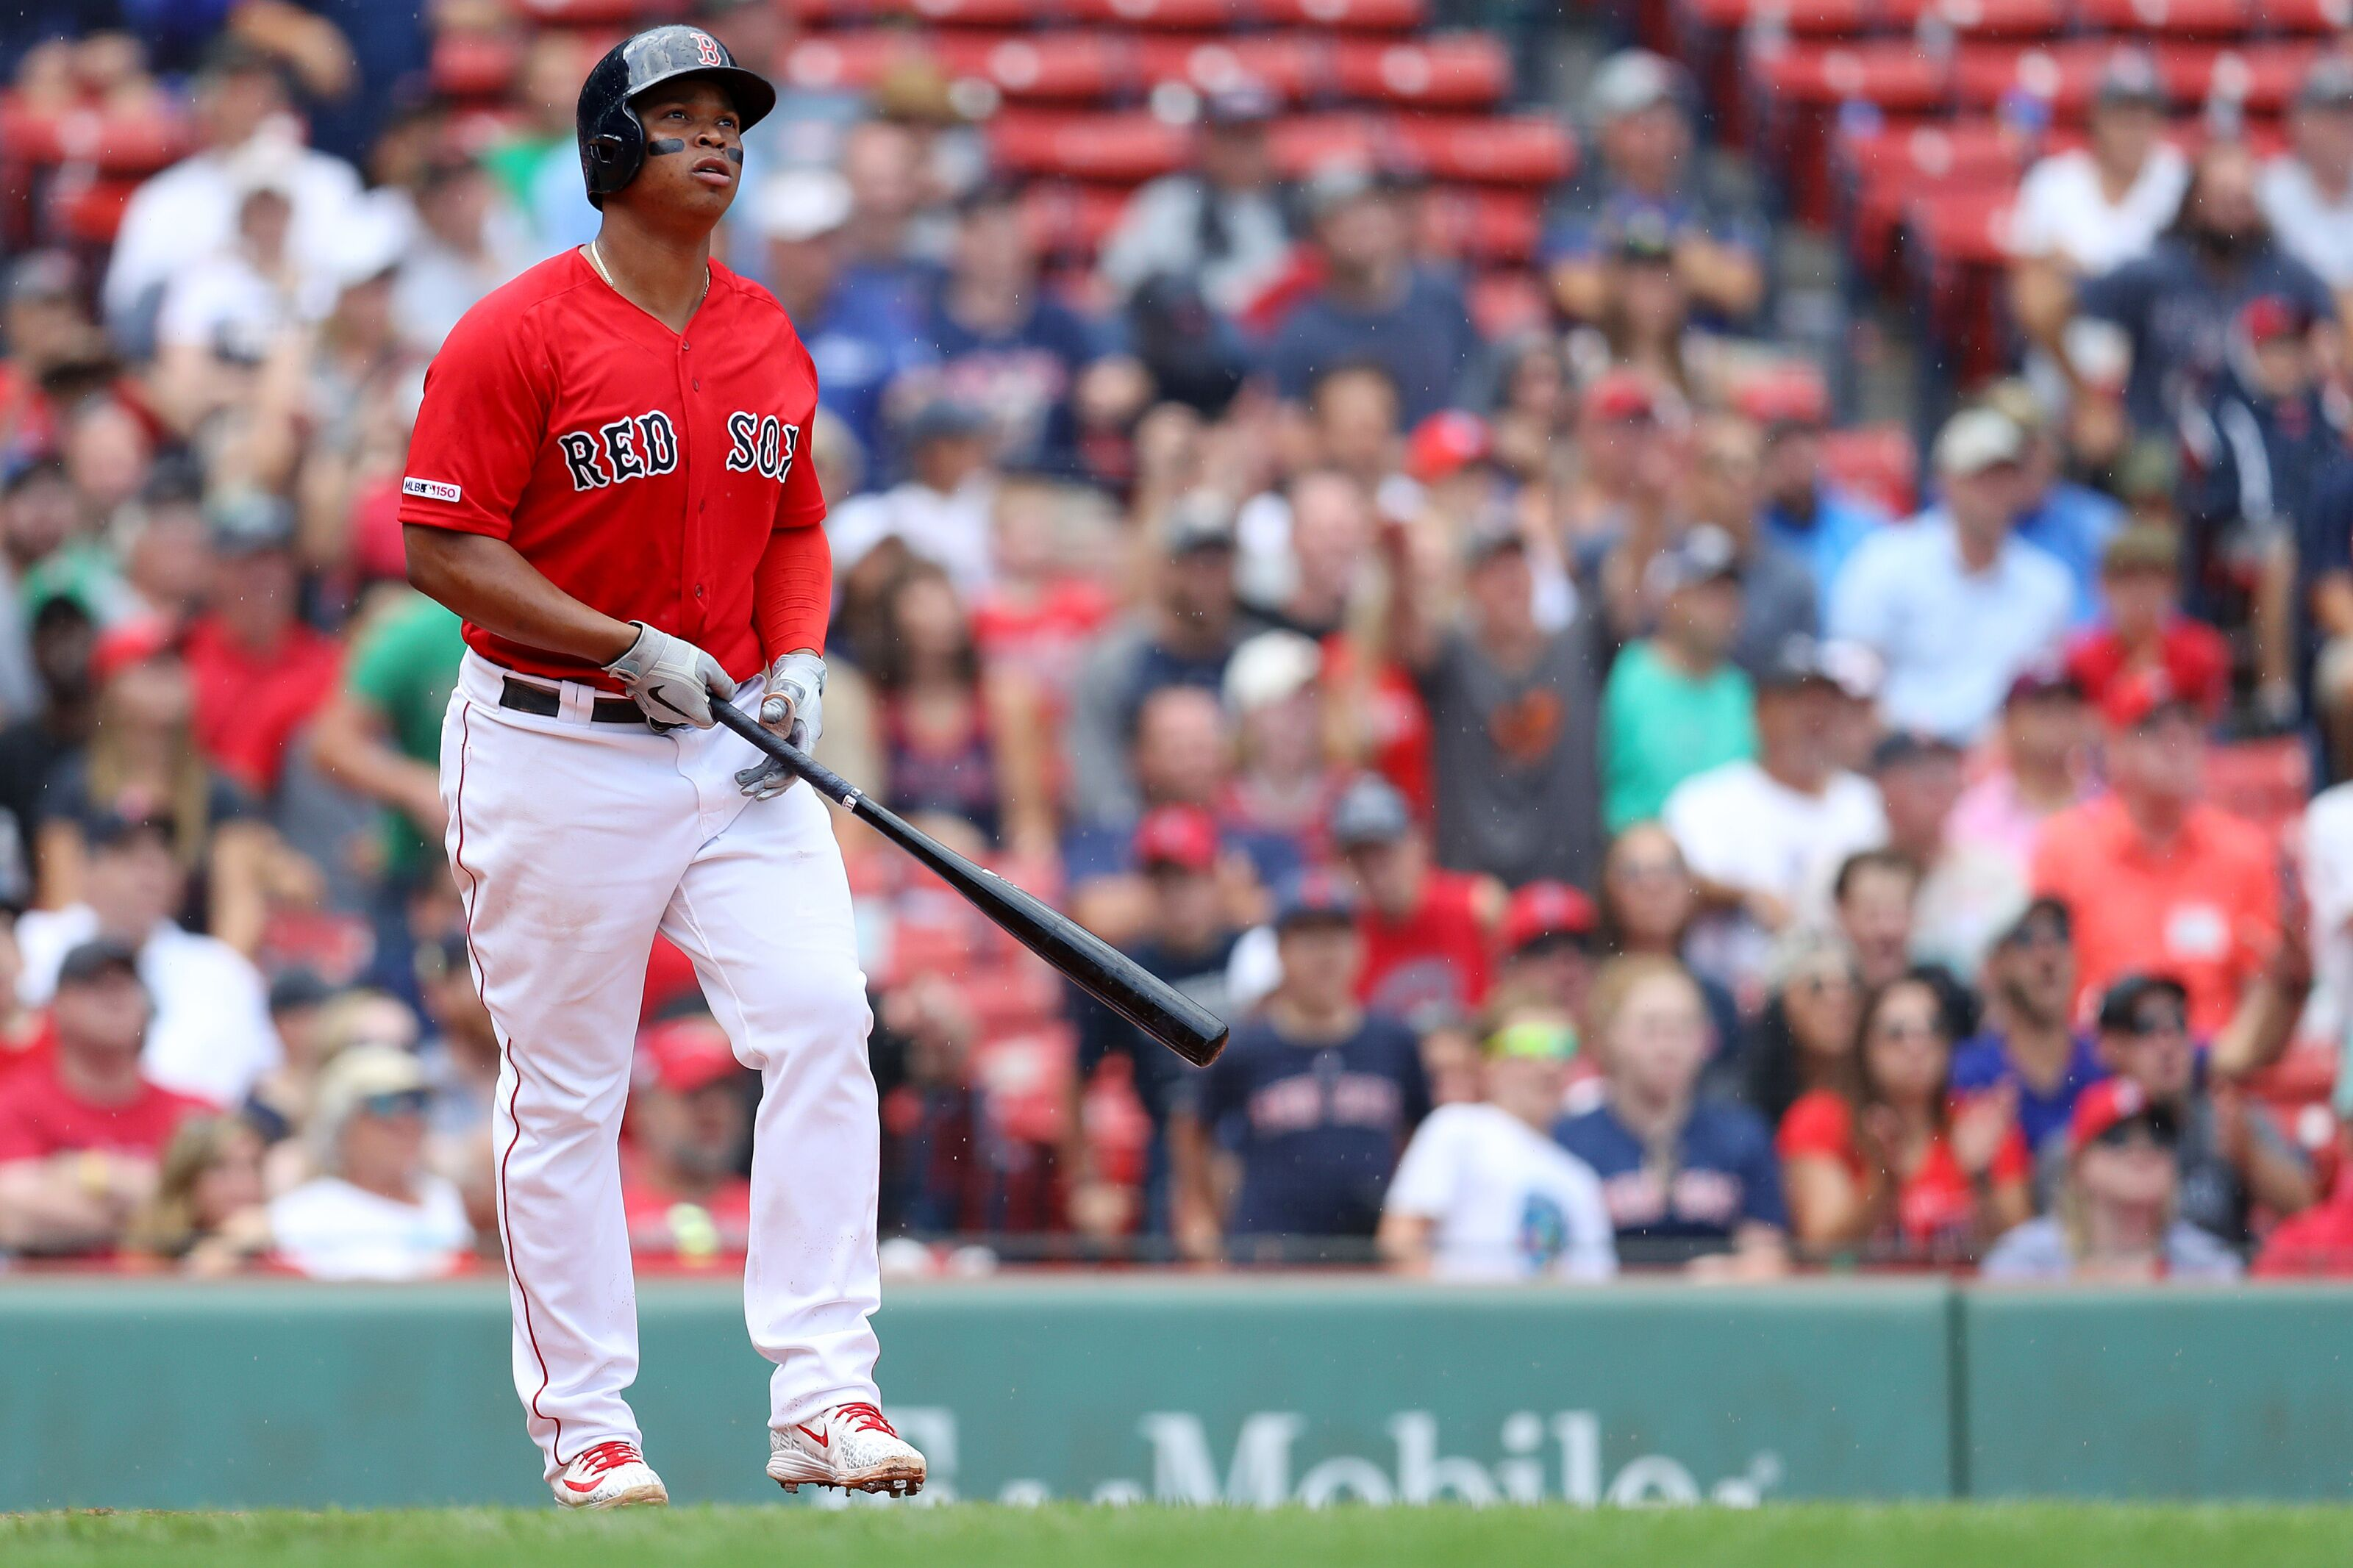 Boston Red Sox: Rafael Devers having historic season